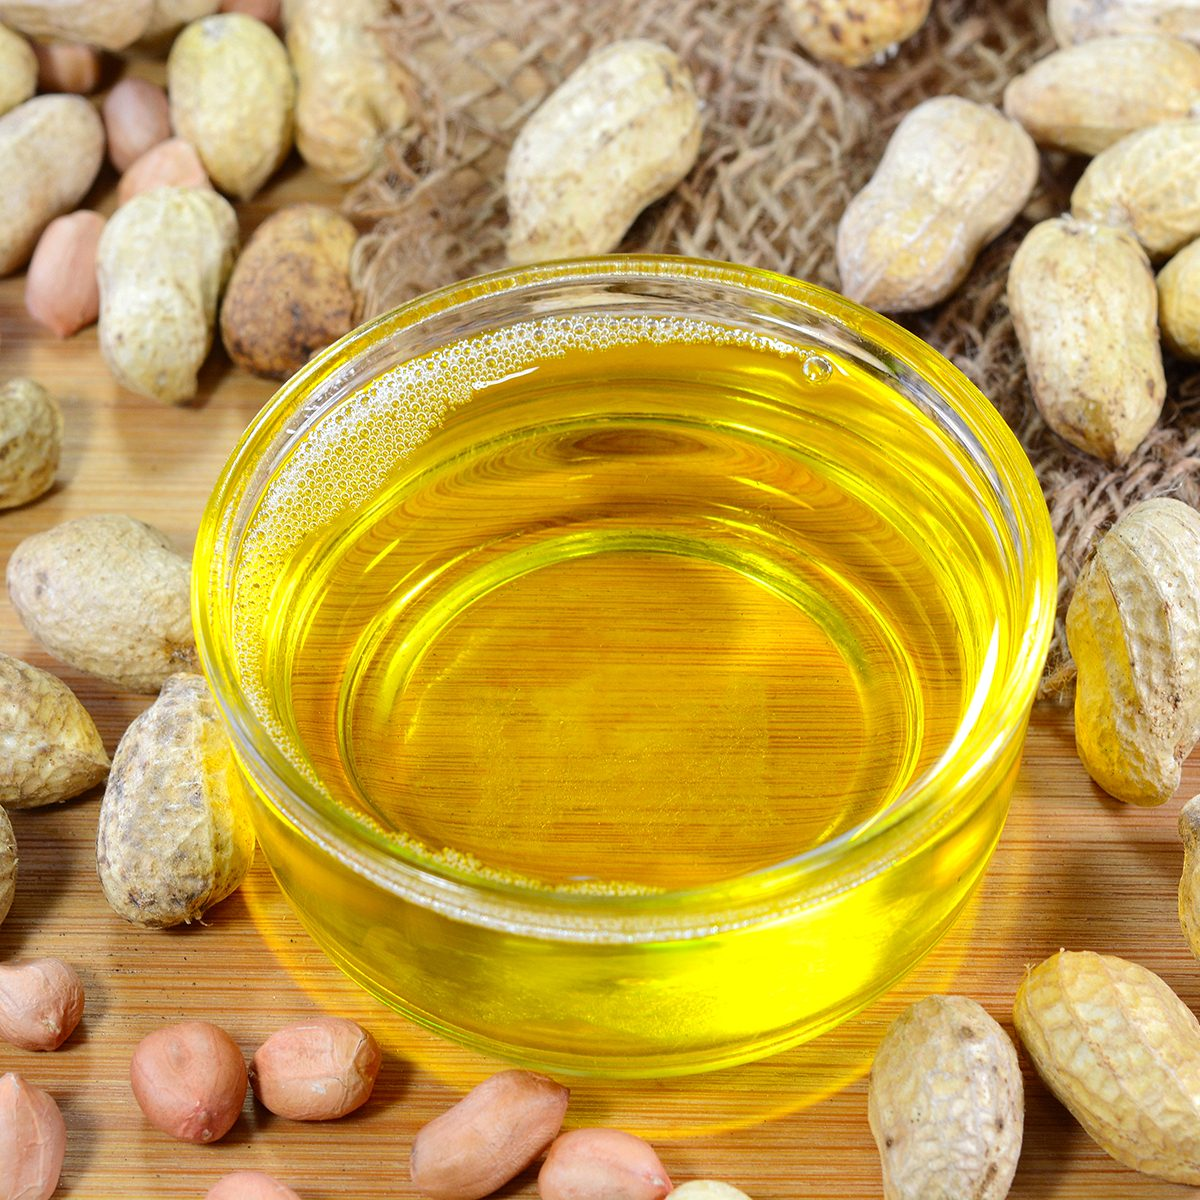 Peanut oil also known as groundnut oil in a glass cup and peanuts on the background.